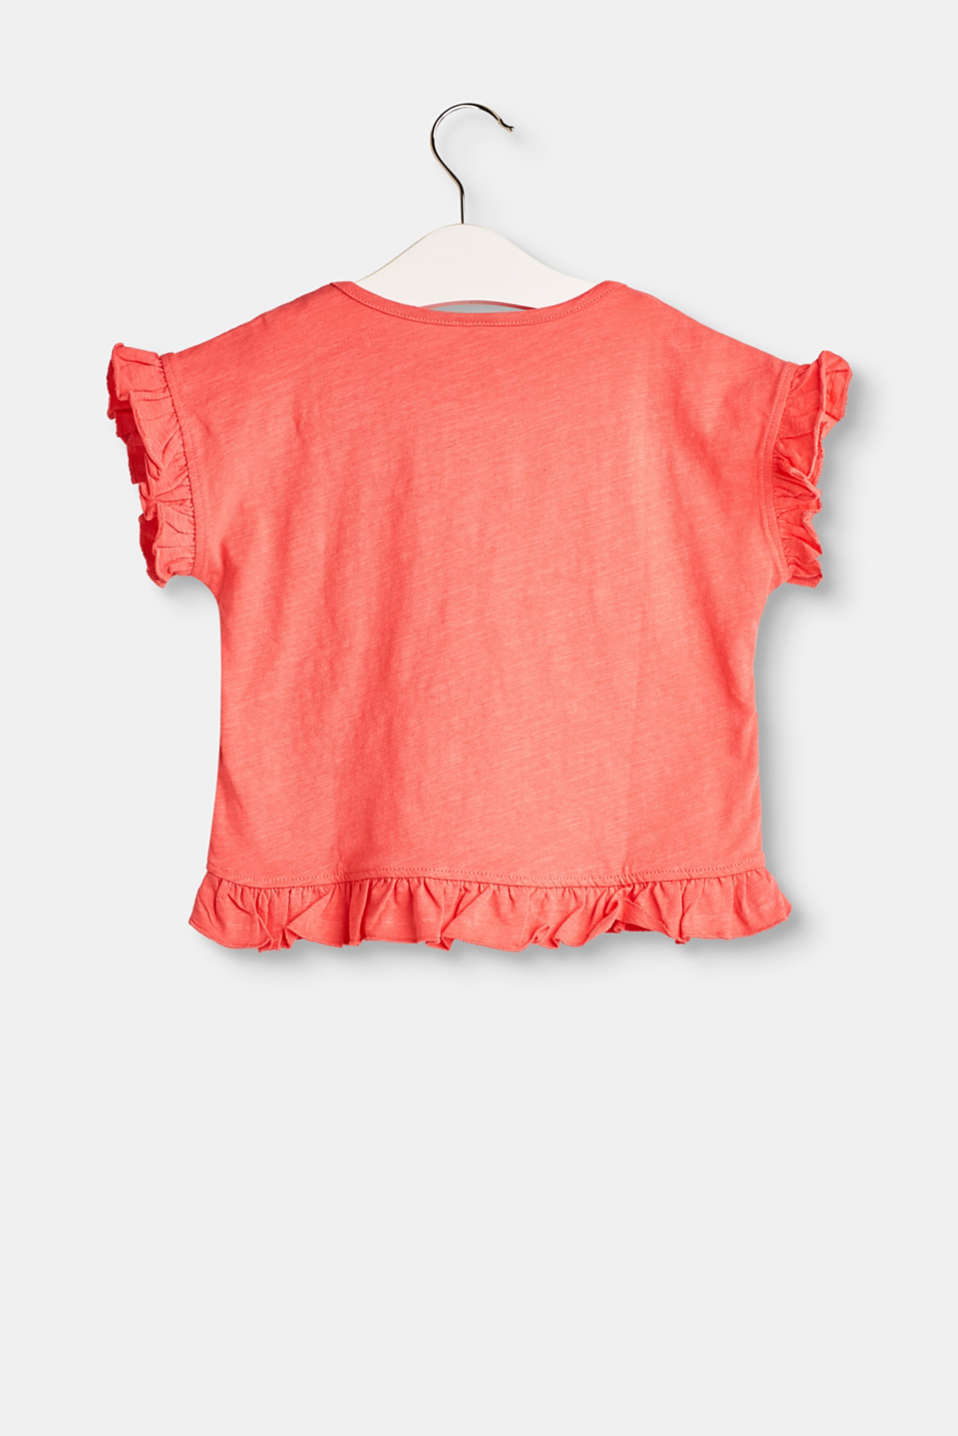 T-shirt with a 3D print and frills, 100% cotton